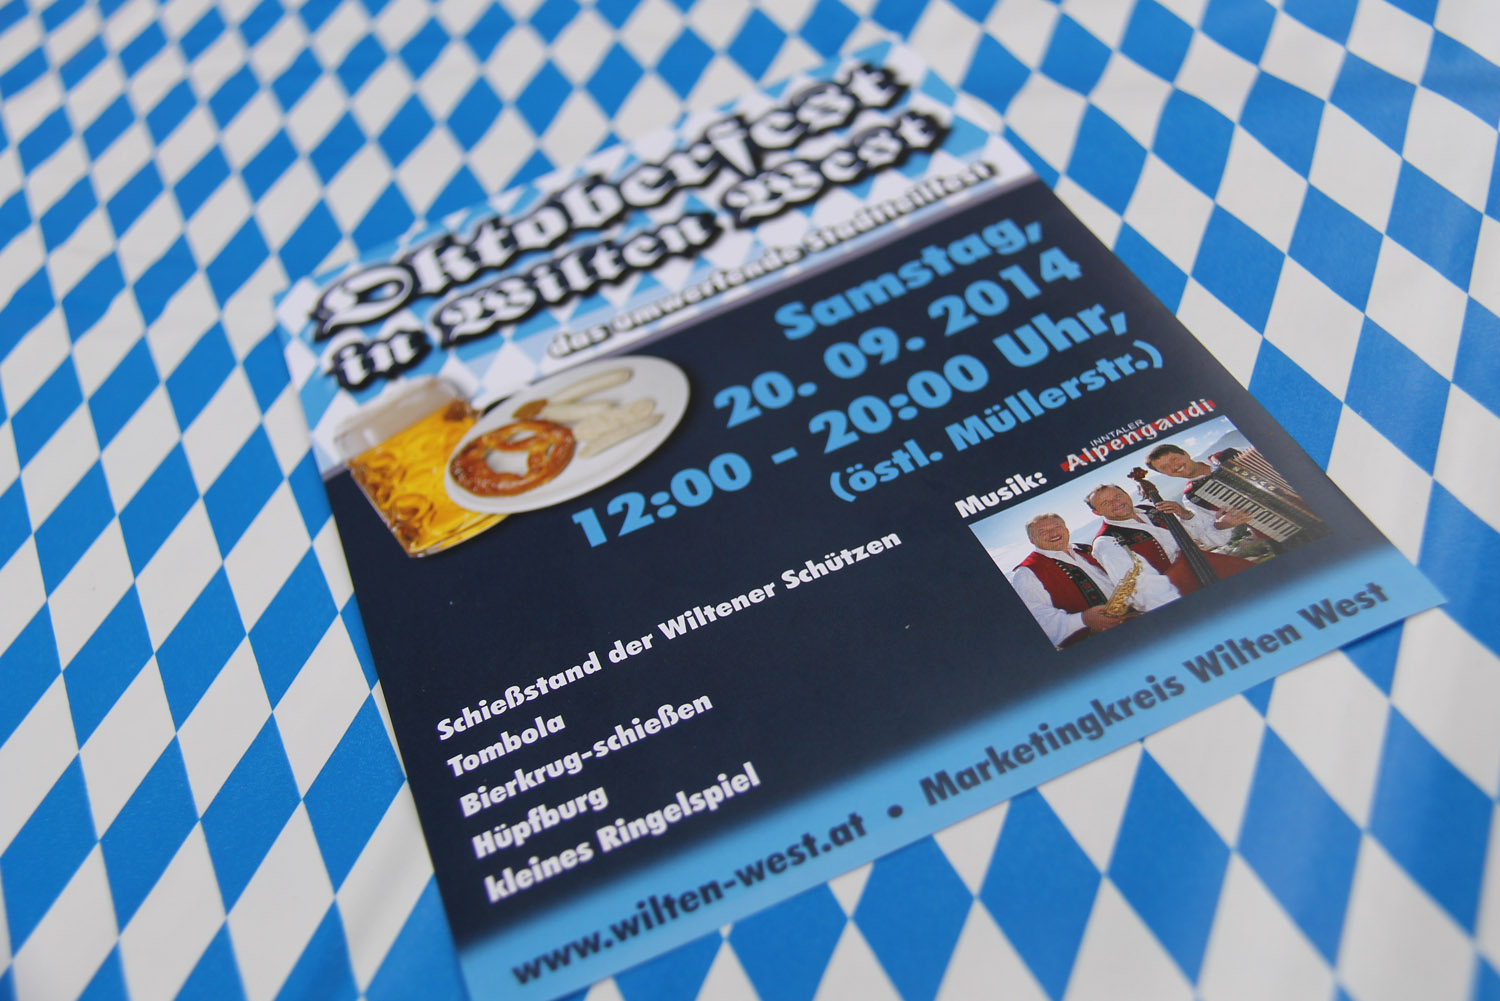 Das Oktoberfest des Marketingkreis Wilten West 2014 - 001